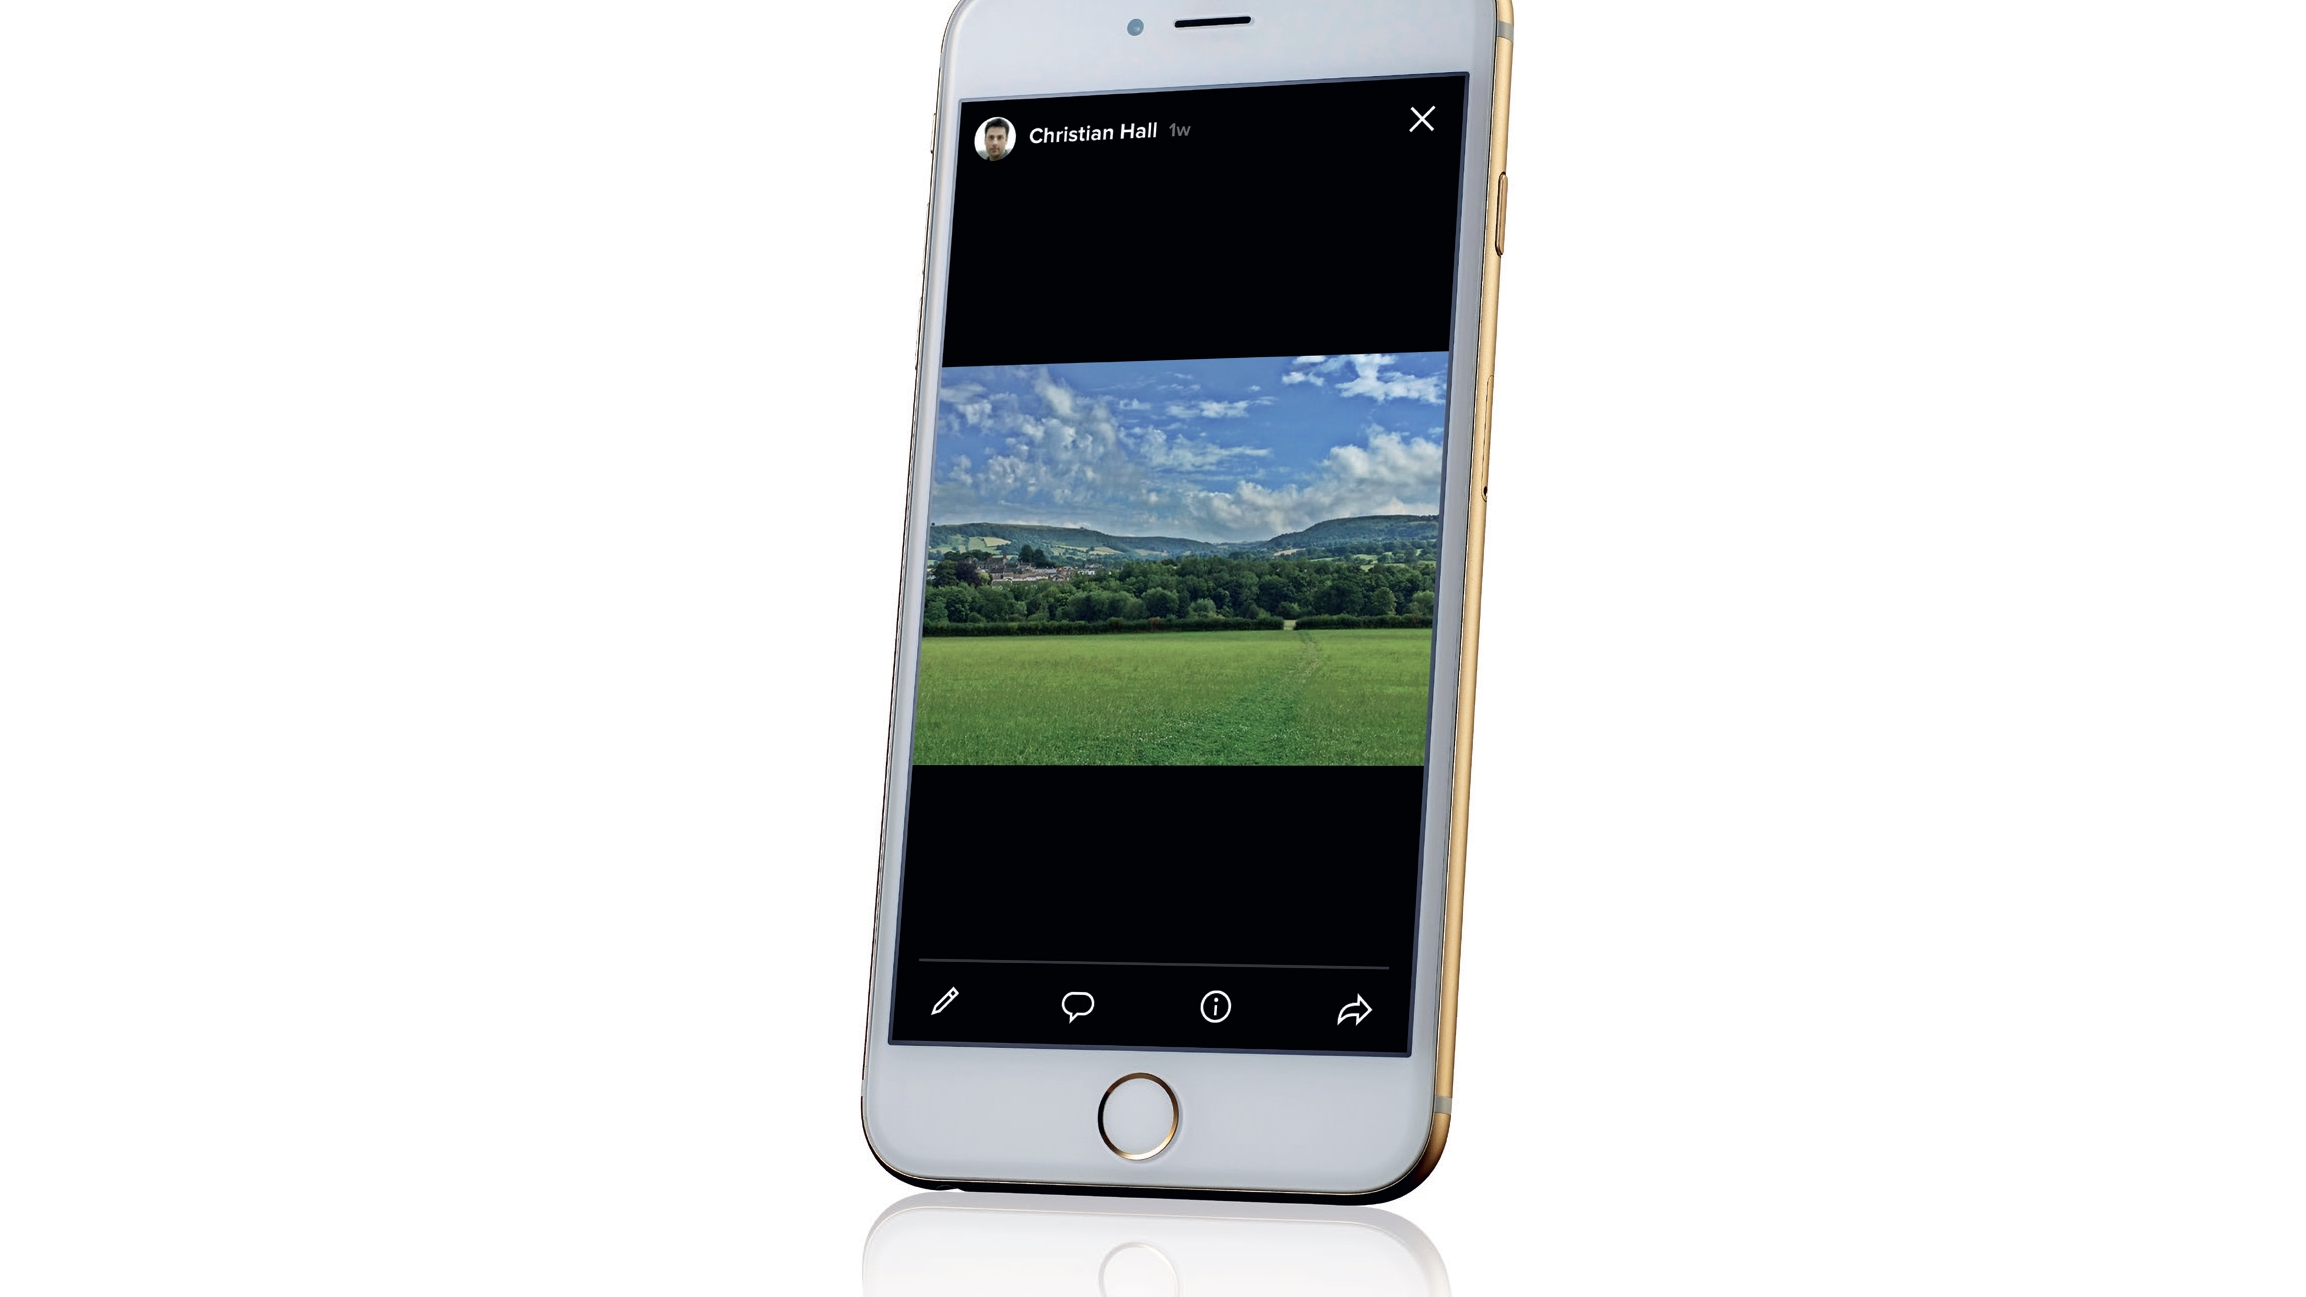 How to archive your iPhone photos to Flickr | TechRadar